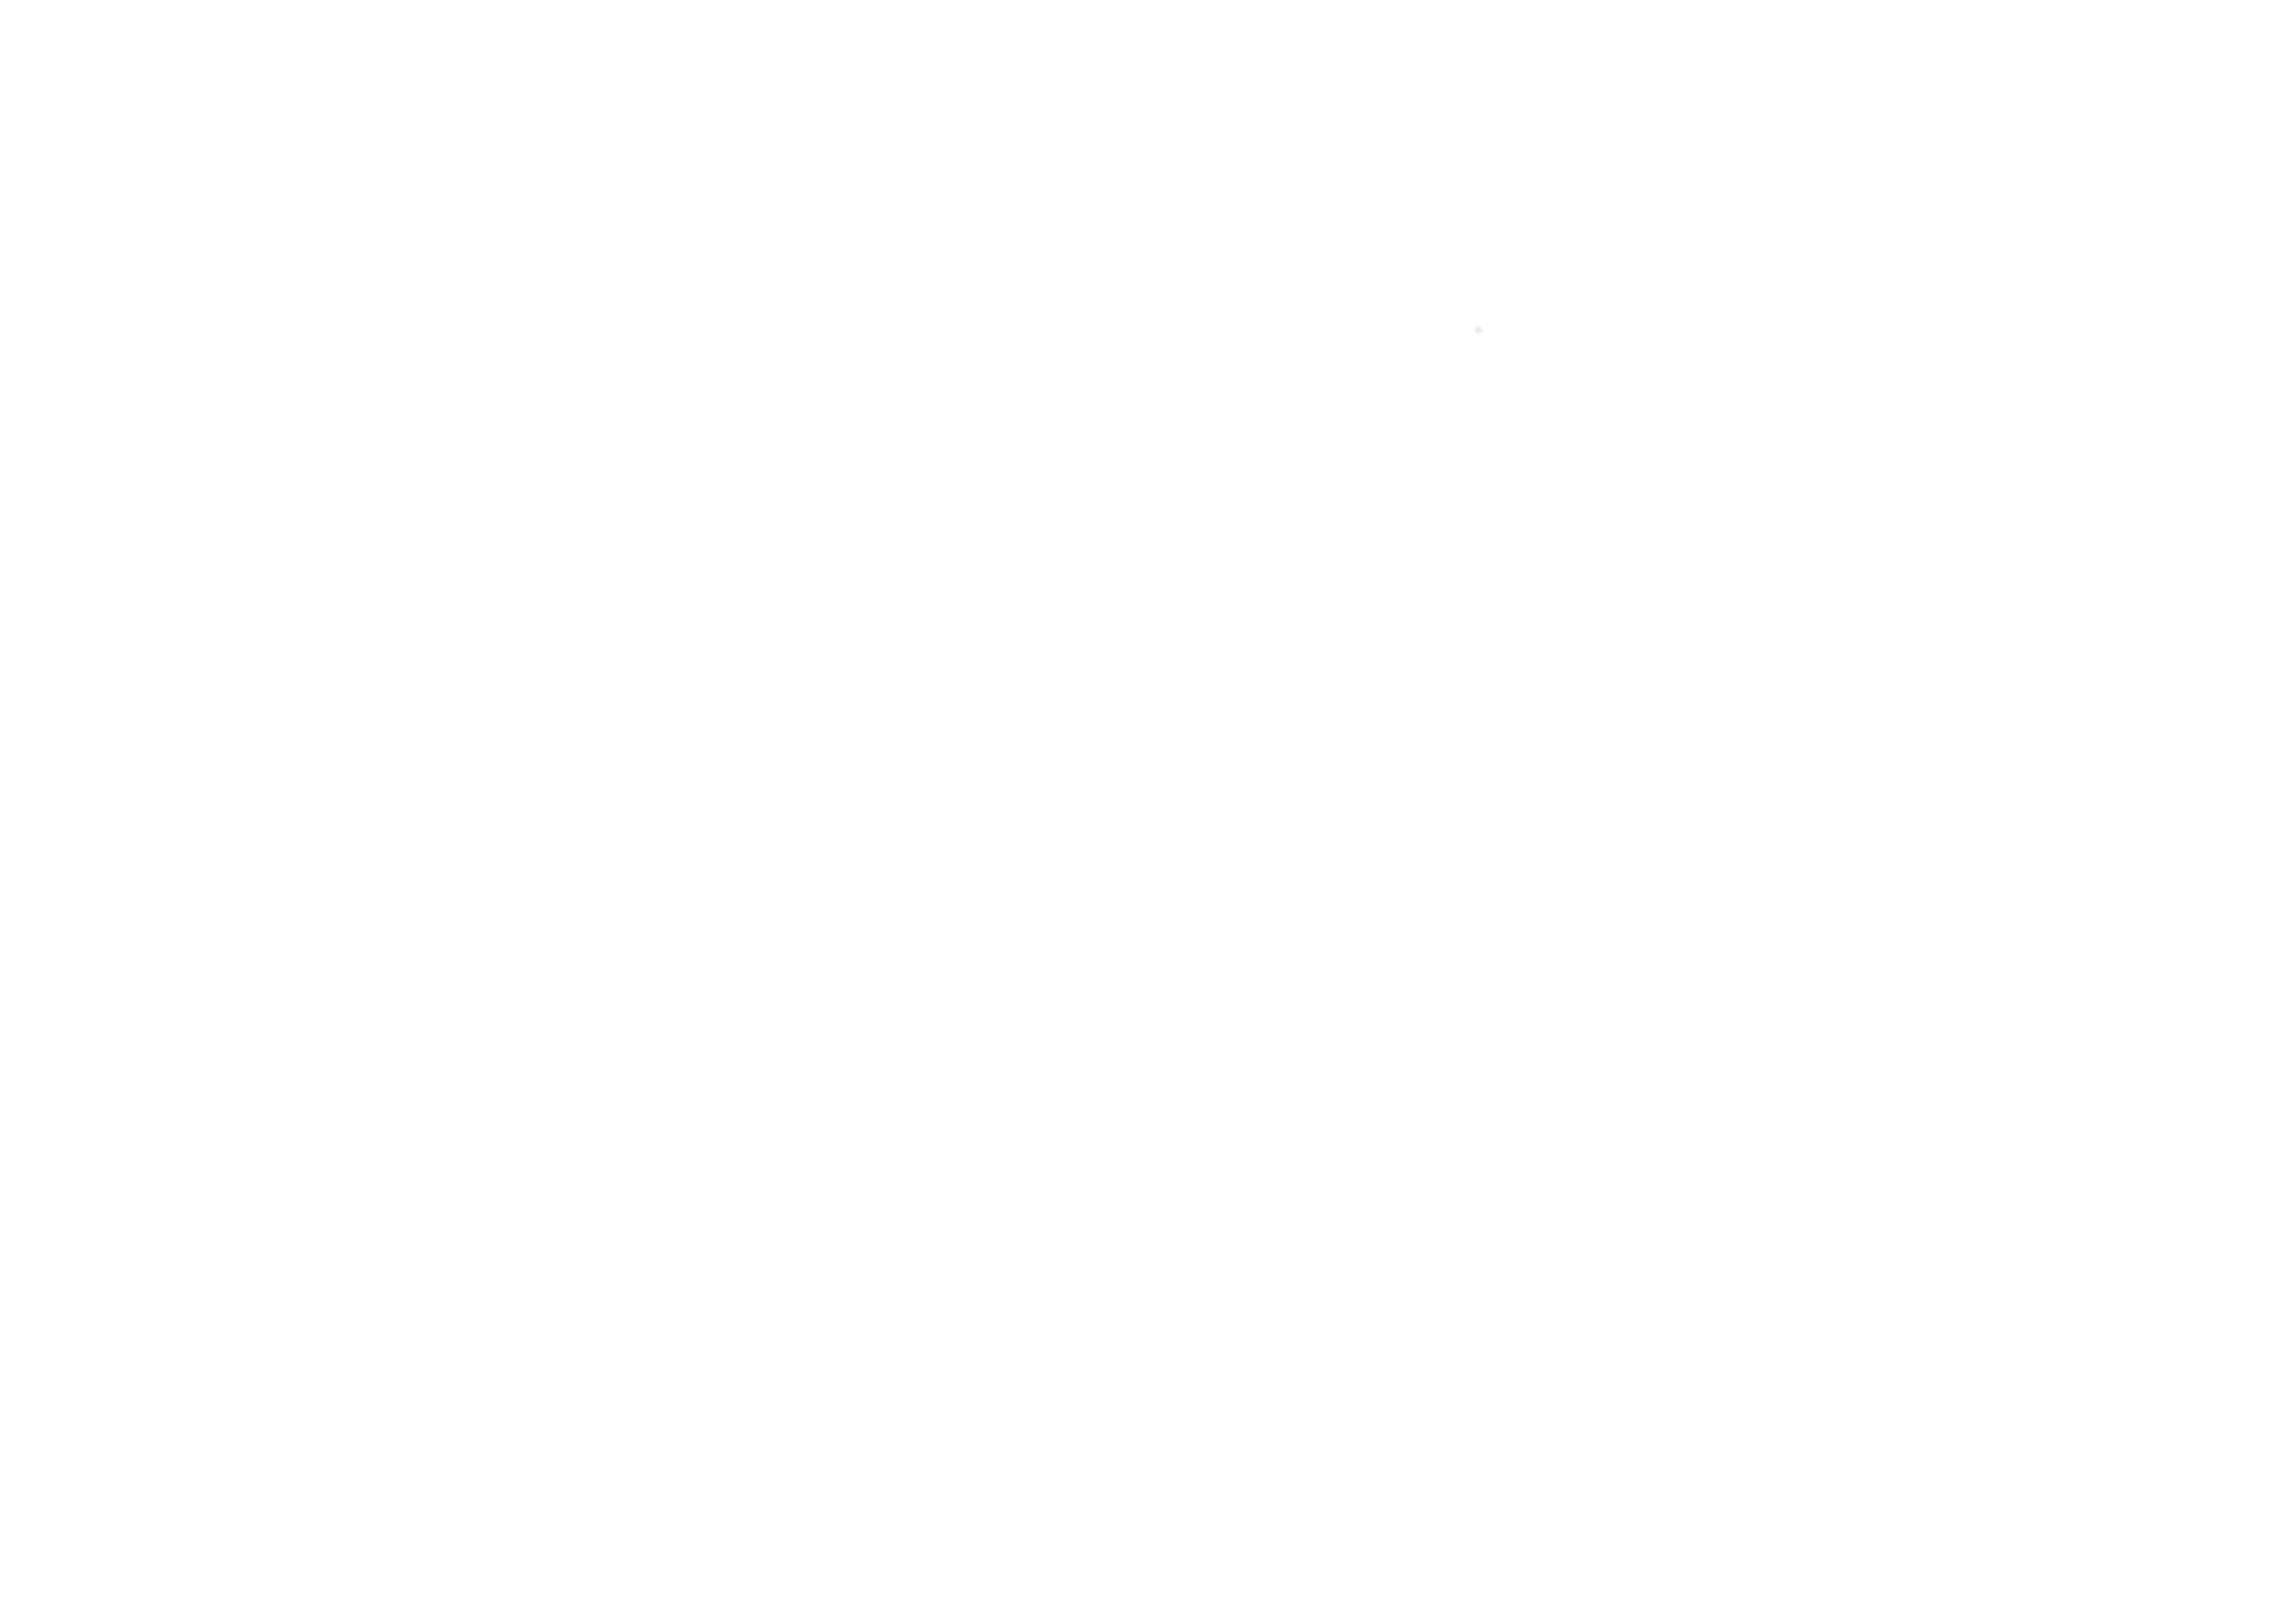 soundmotion_logo